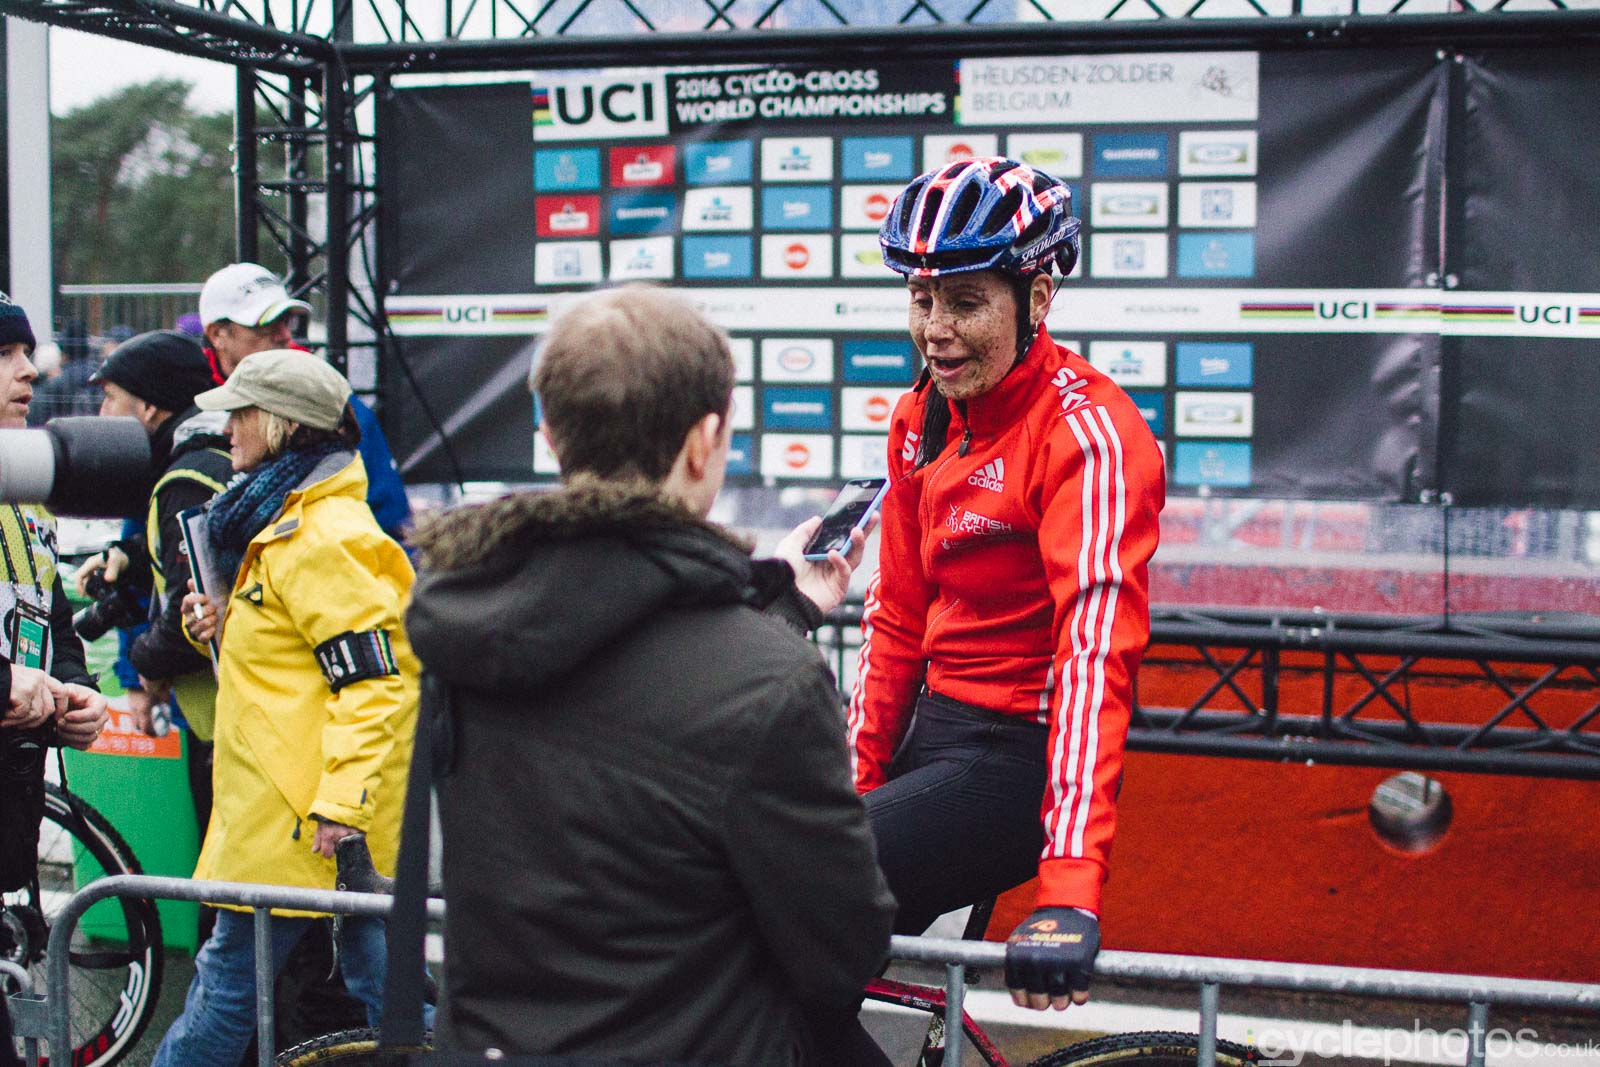 2016-cyclephotos-cyclocross-world-championships-zolder-154633-nikki-harris